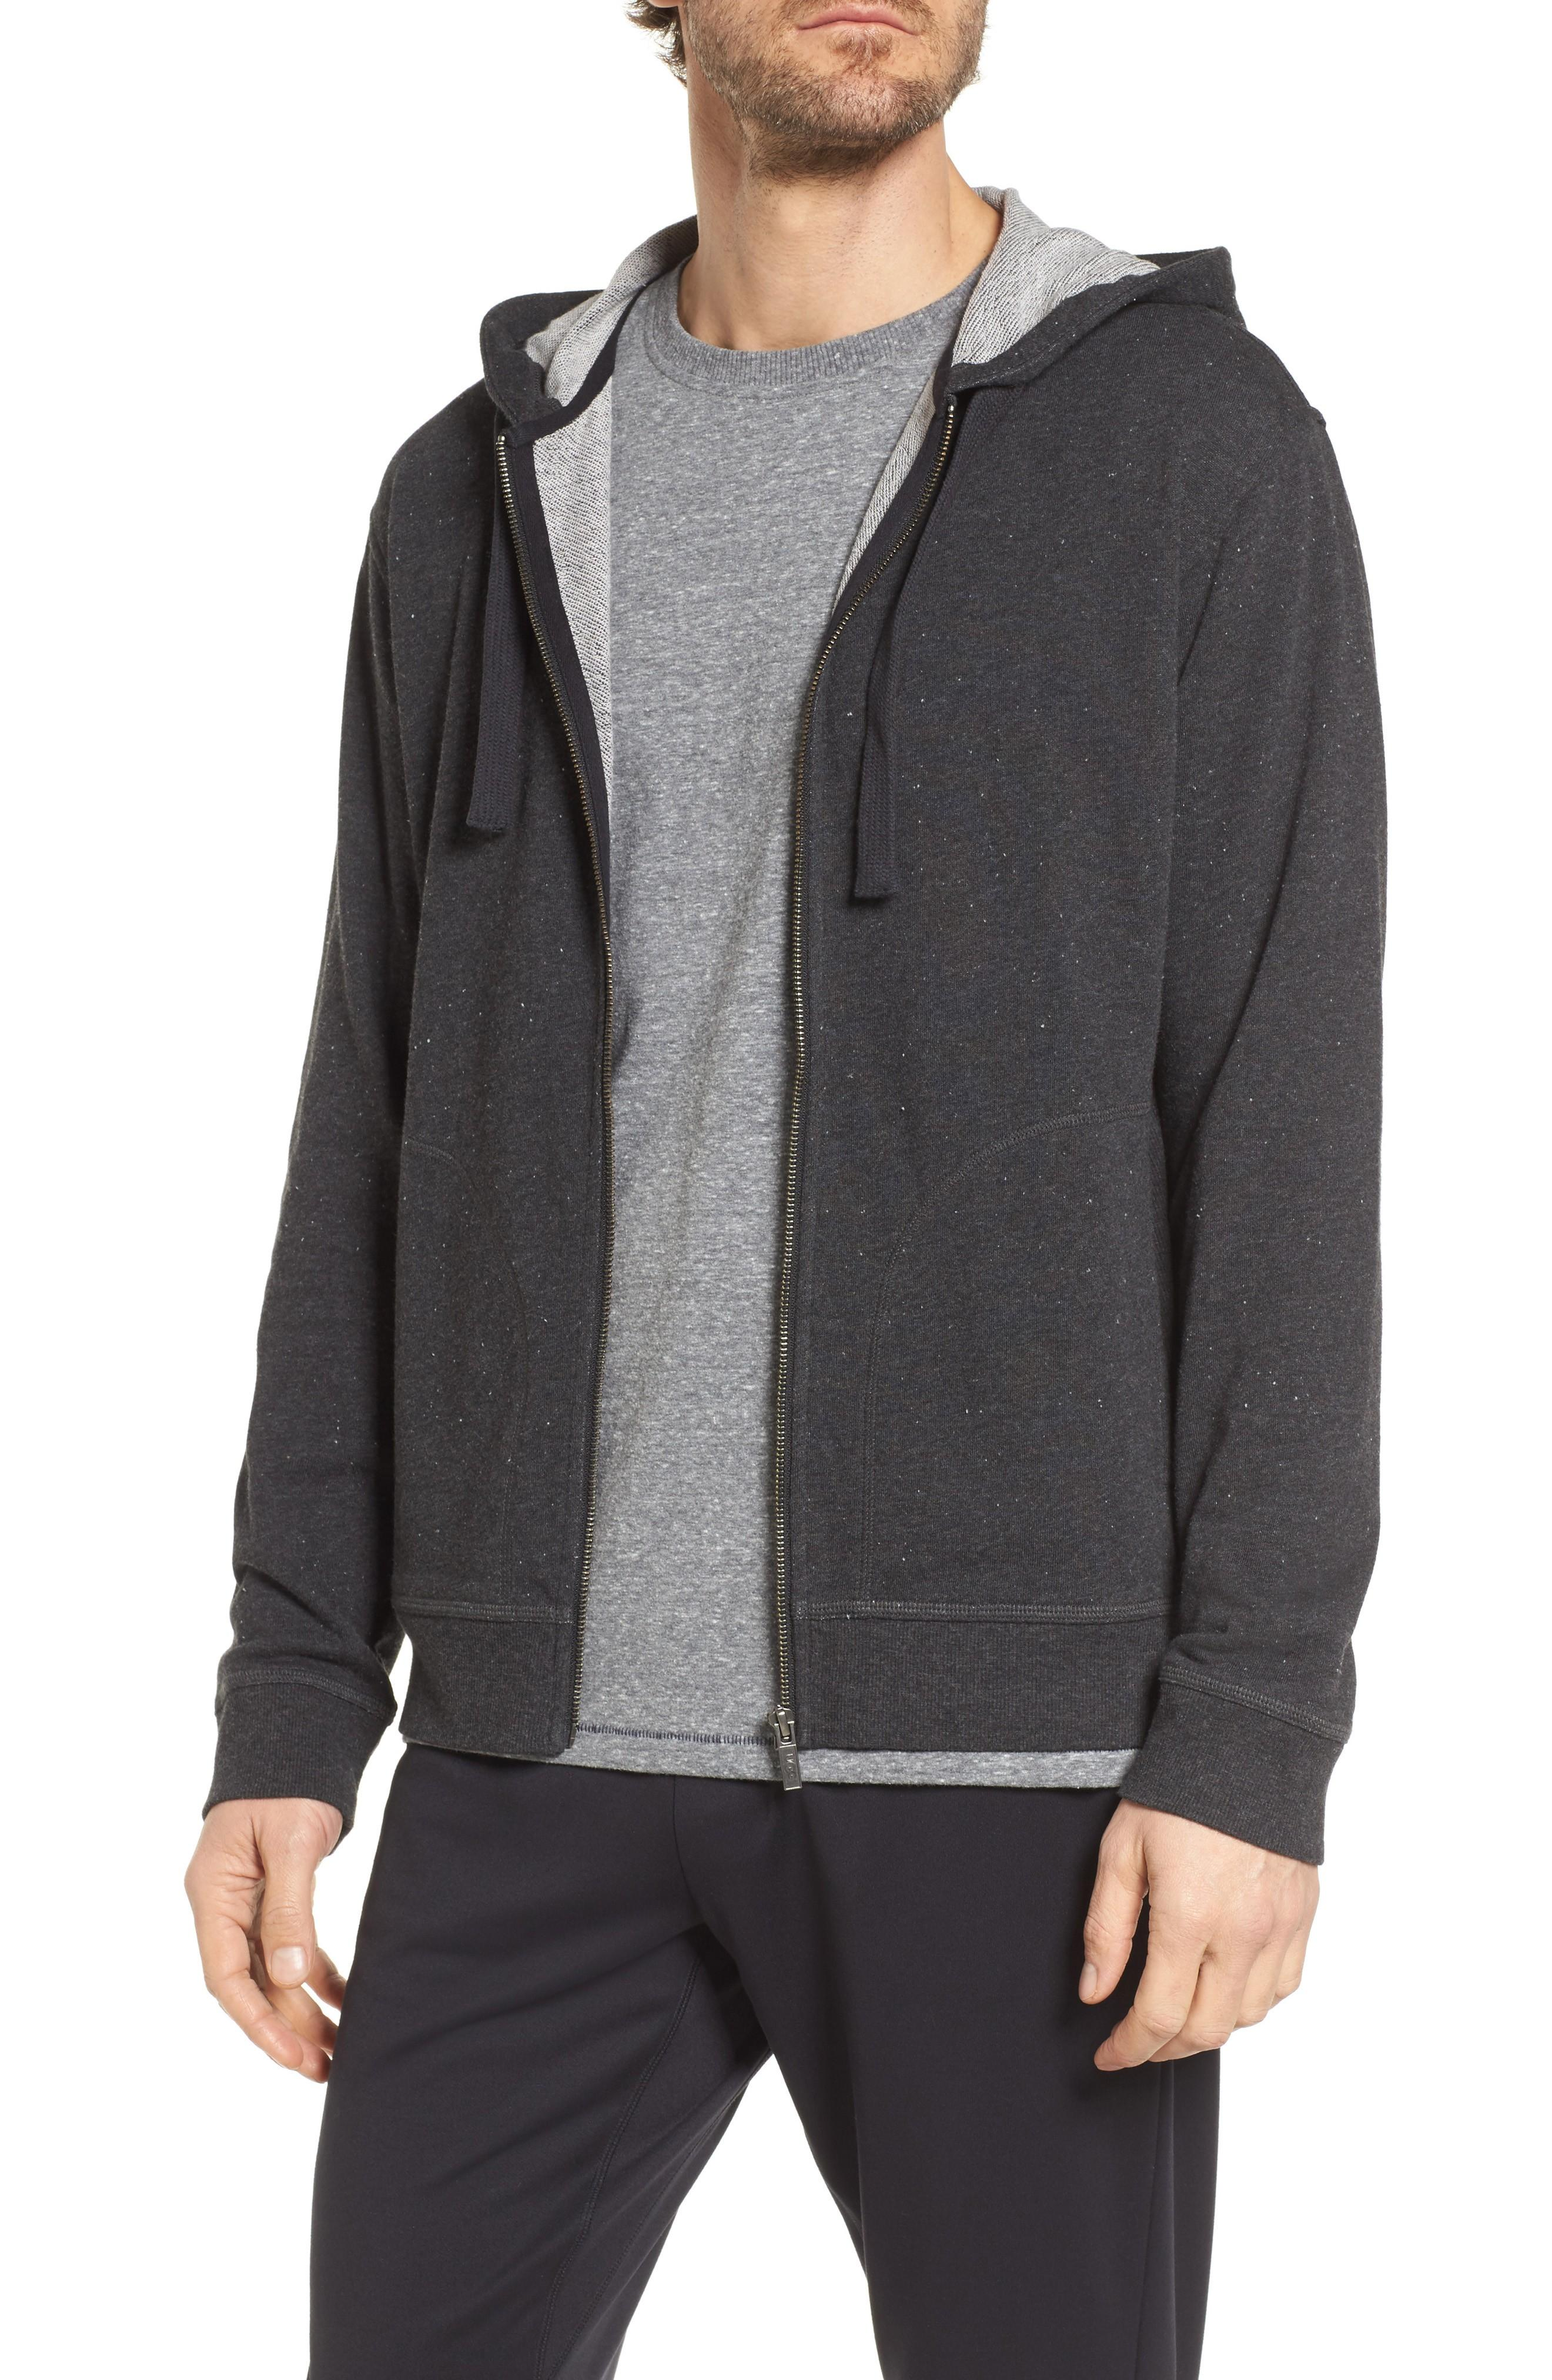 7a8be1d528f A soft cotton French terry blend means easy comfort in a versatile zip  hoodie with lightweight ribbing on the cuffs